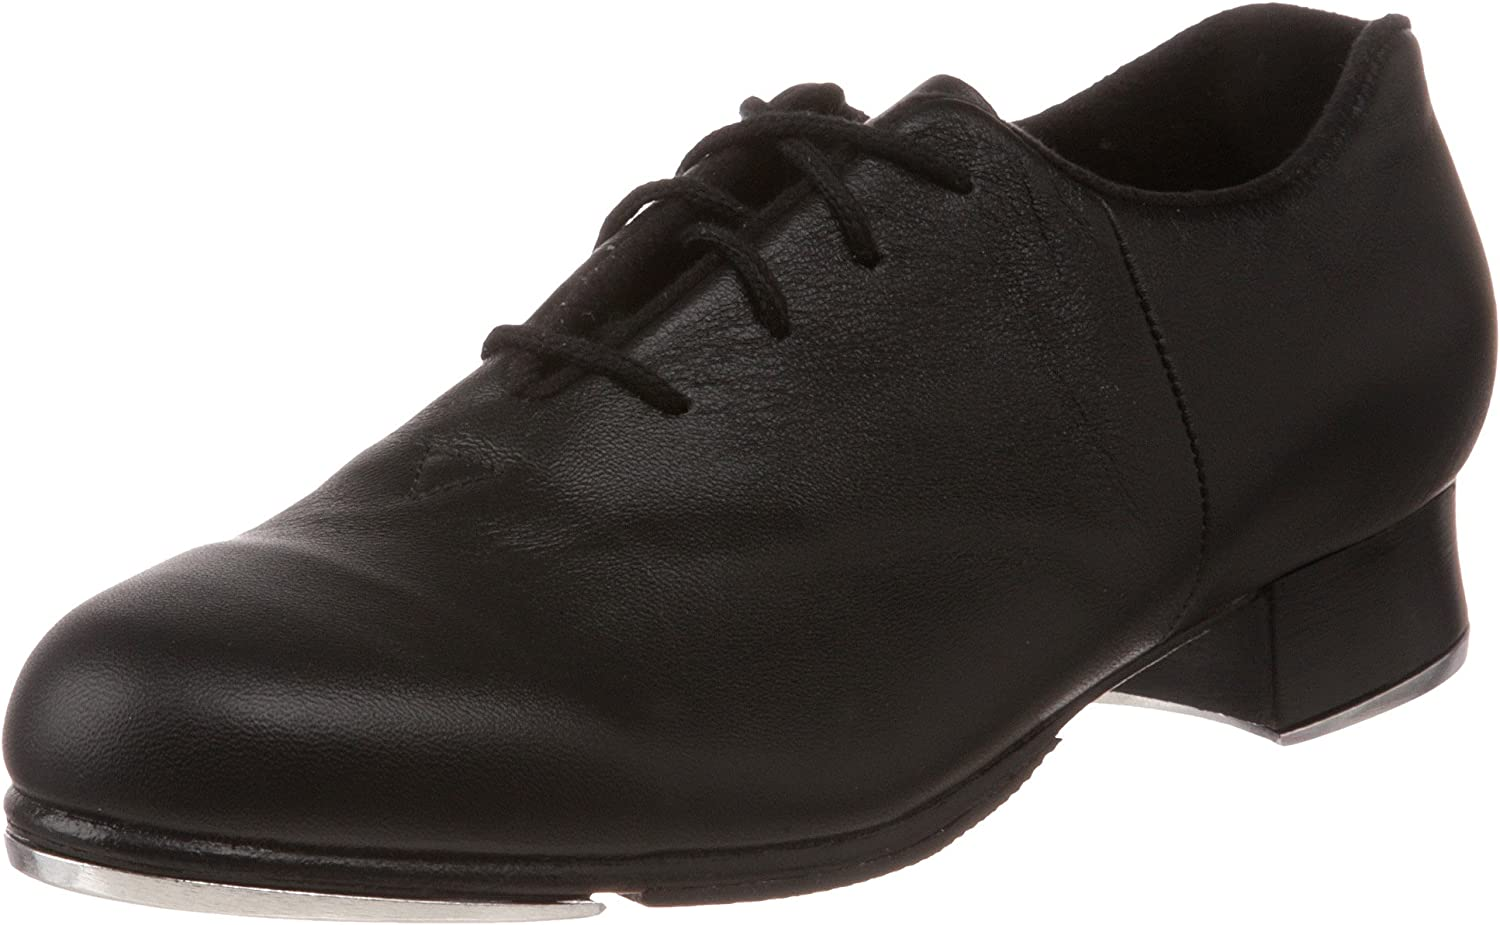 Bloch Dance Women's Audeo Jazz Tap Leather Tap shoes